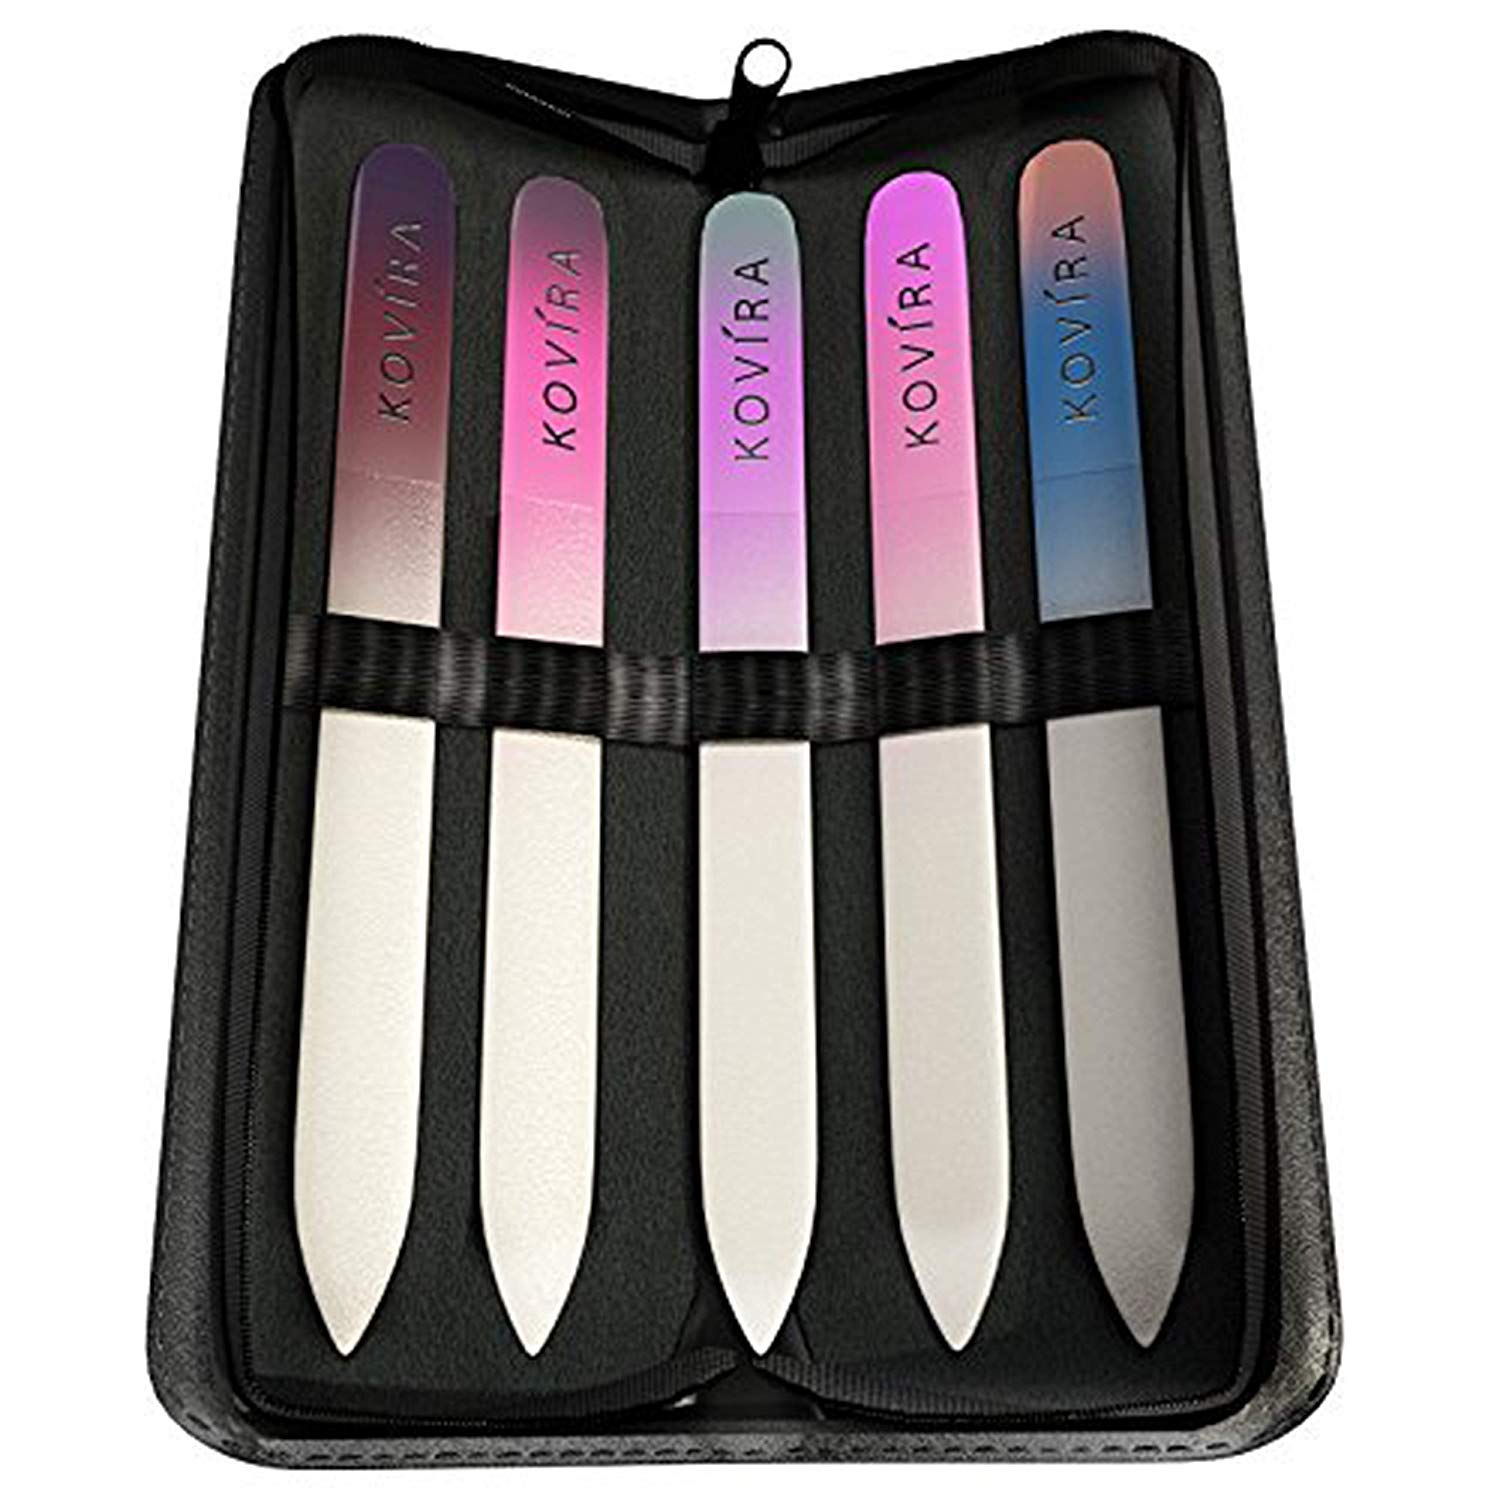 Amazon.com: Nail File Set - Professional Double Sided Crystal Nail ...